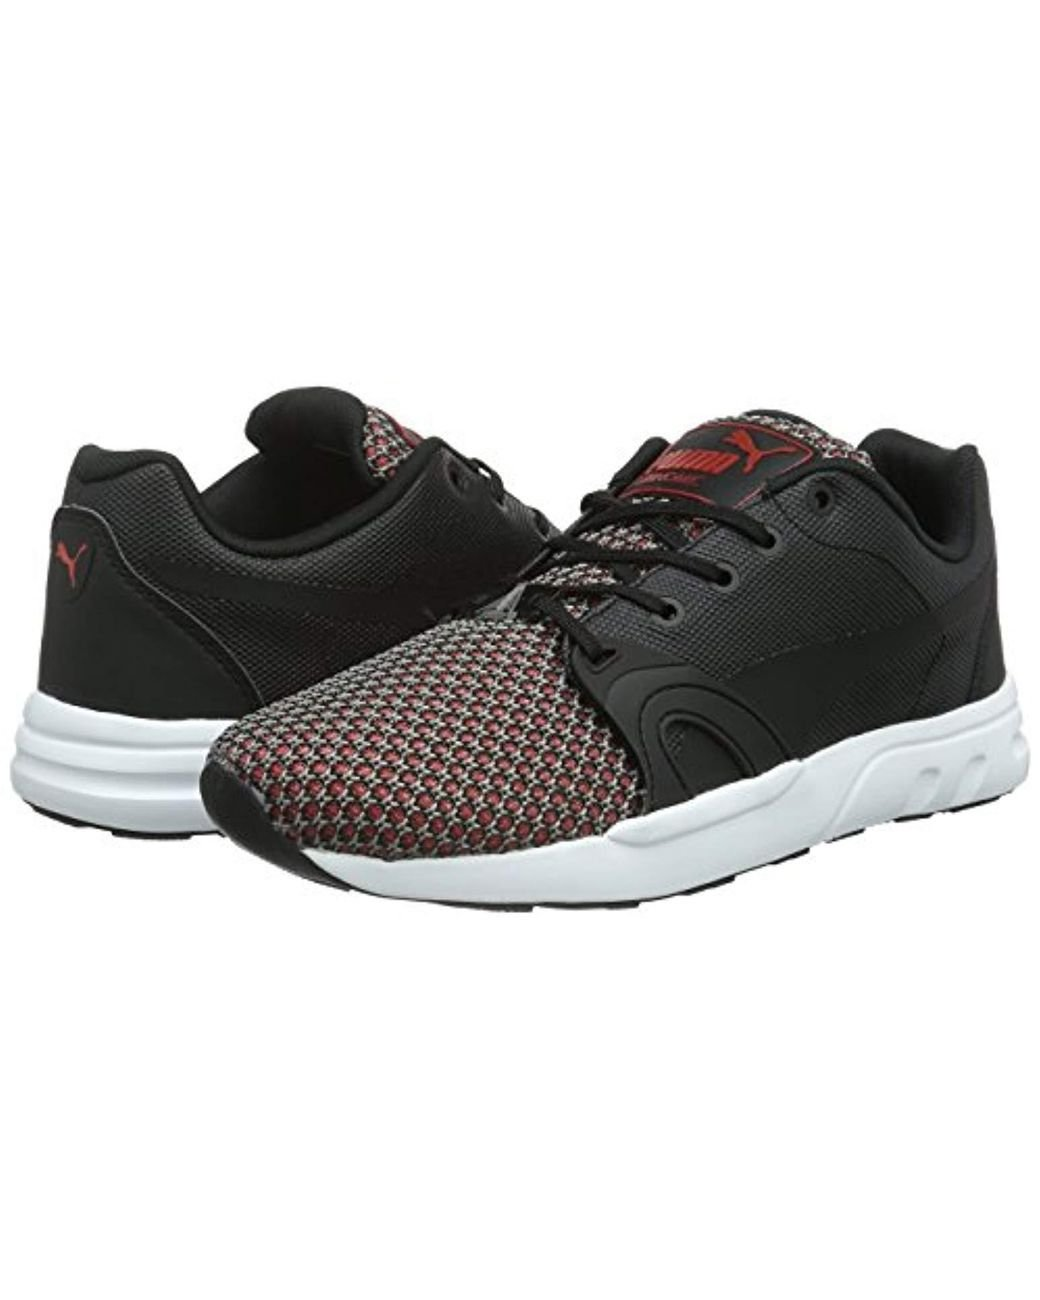 Men Filtered's Sneakers S Low In For Lyst Puma Black Top Xt nOwmN0v8